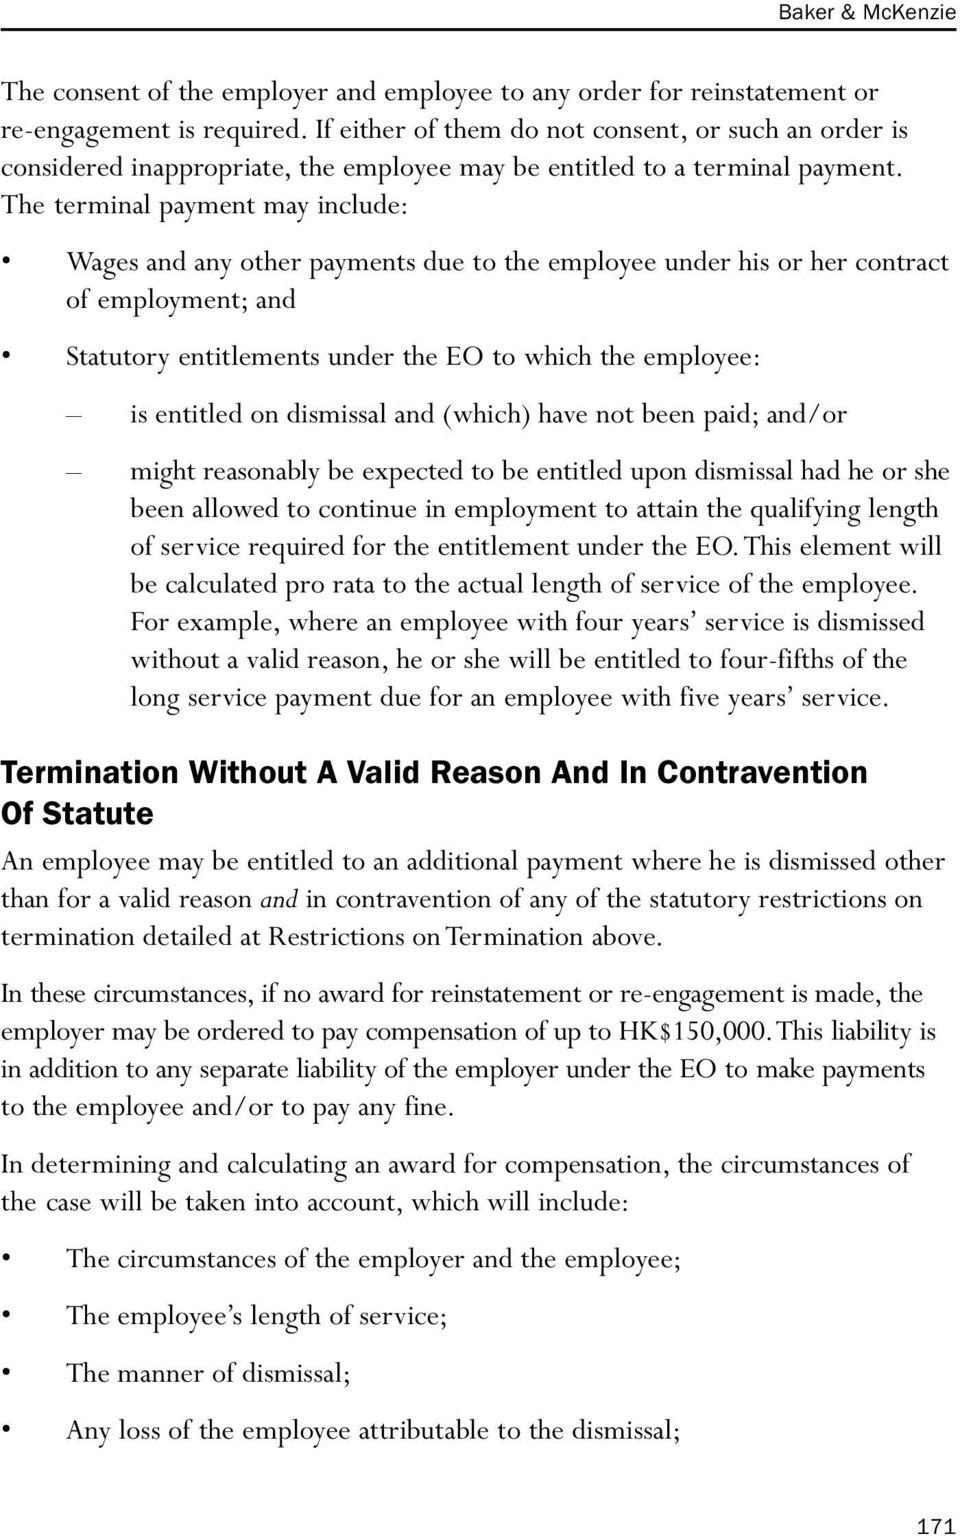 The terminal payment may include: Wages and any other payments due to the employee under his or her contract of employment; and Statutory entitlements under the EO to which the employee: is entitled